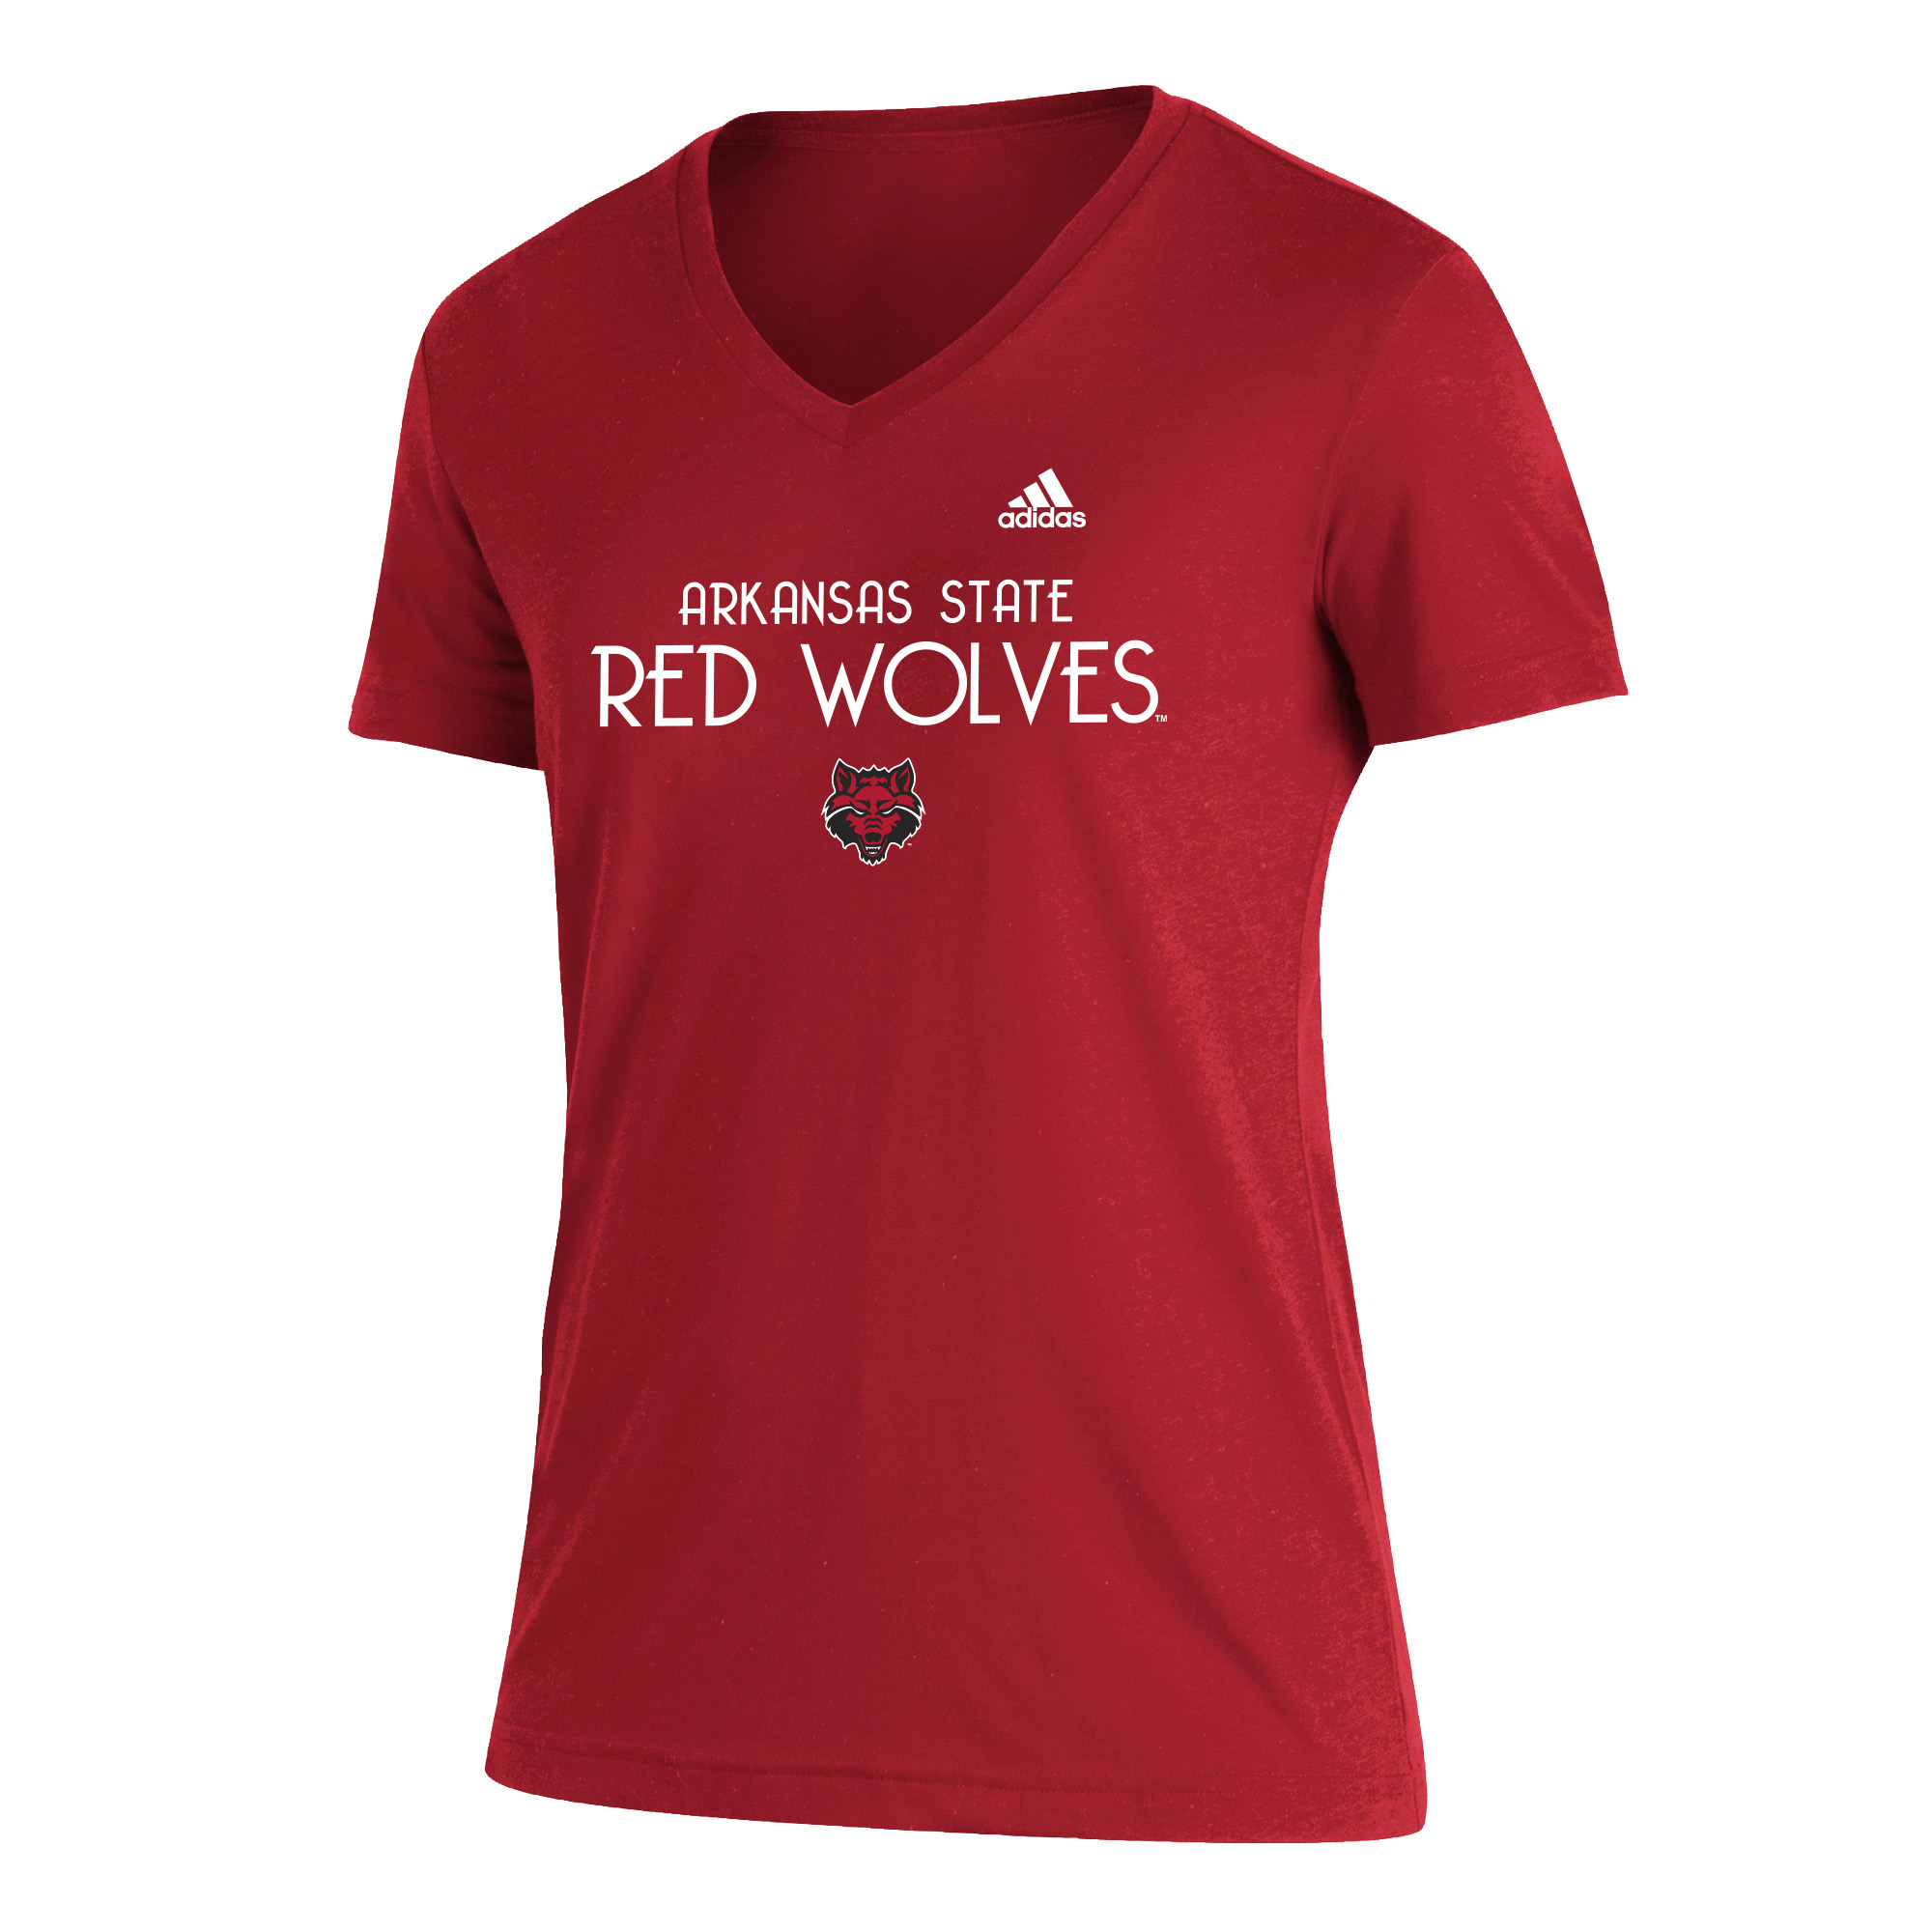 Arkansas State Red Wolves Womens Blend SS Tee